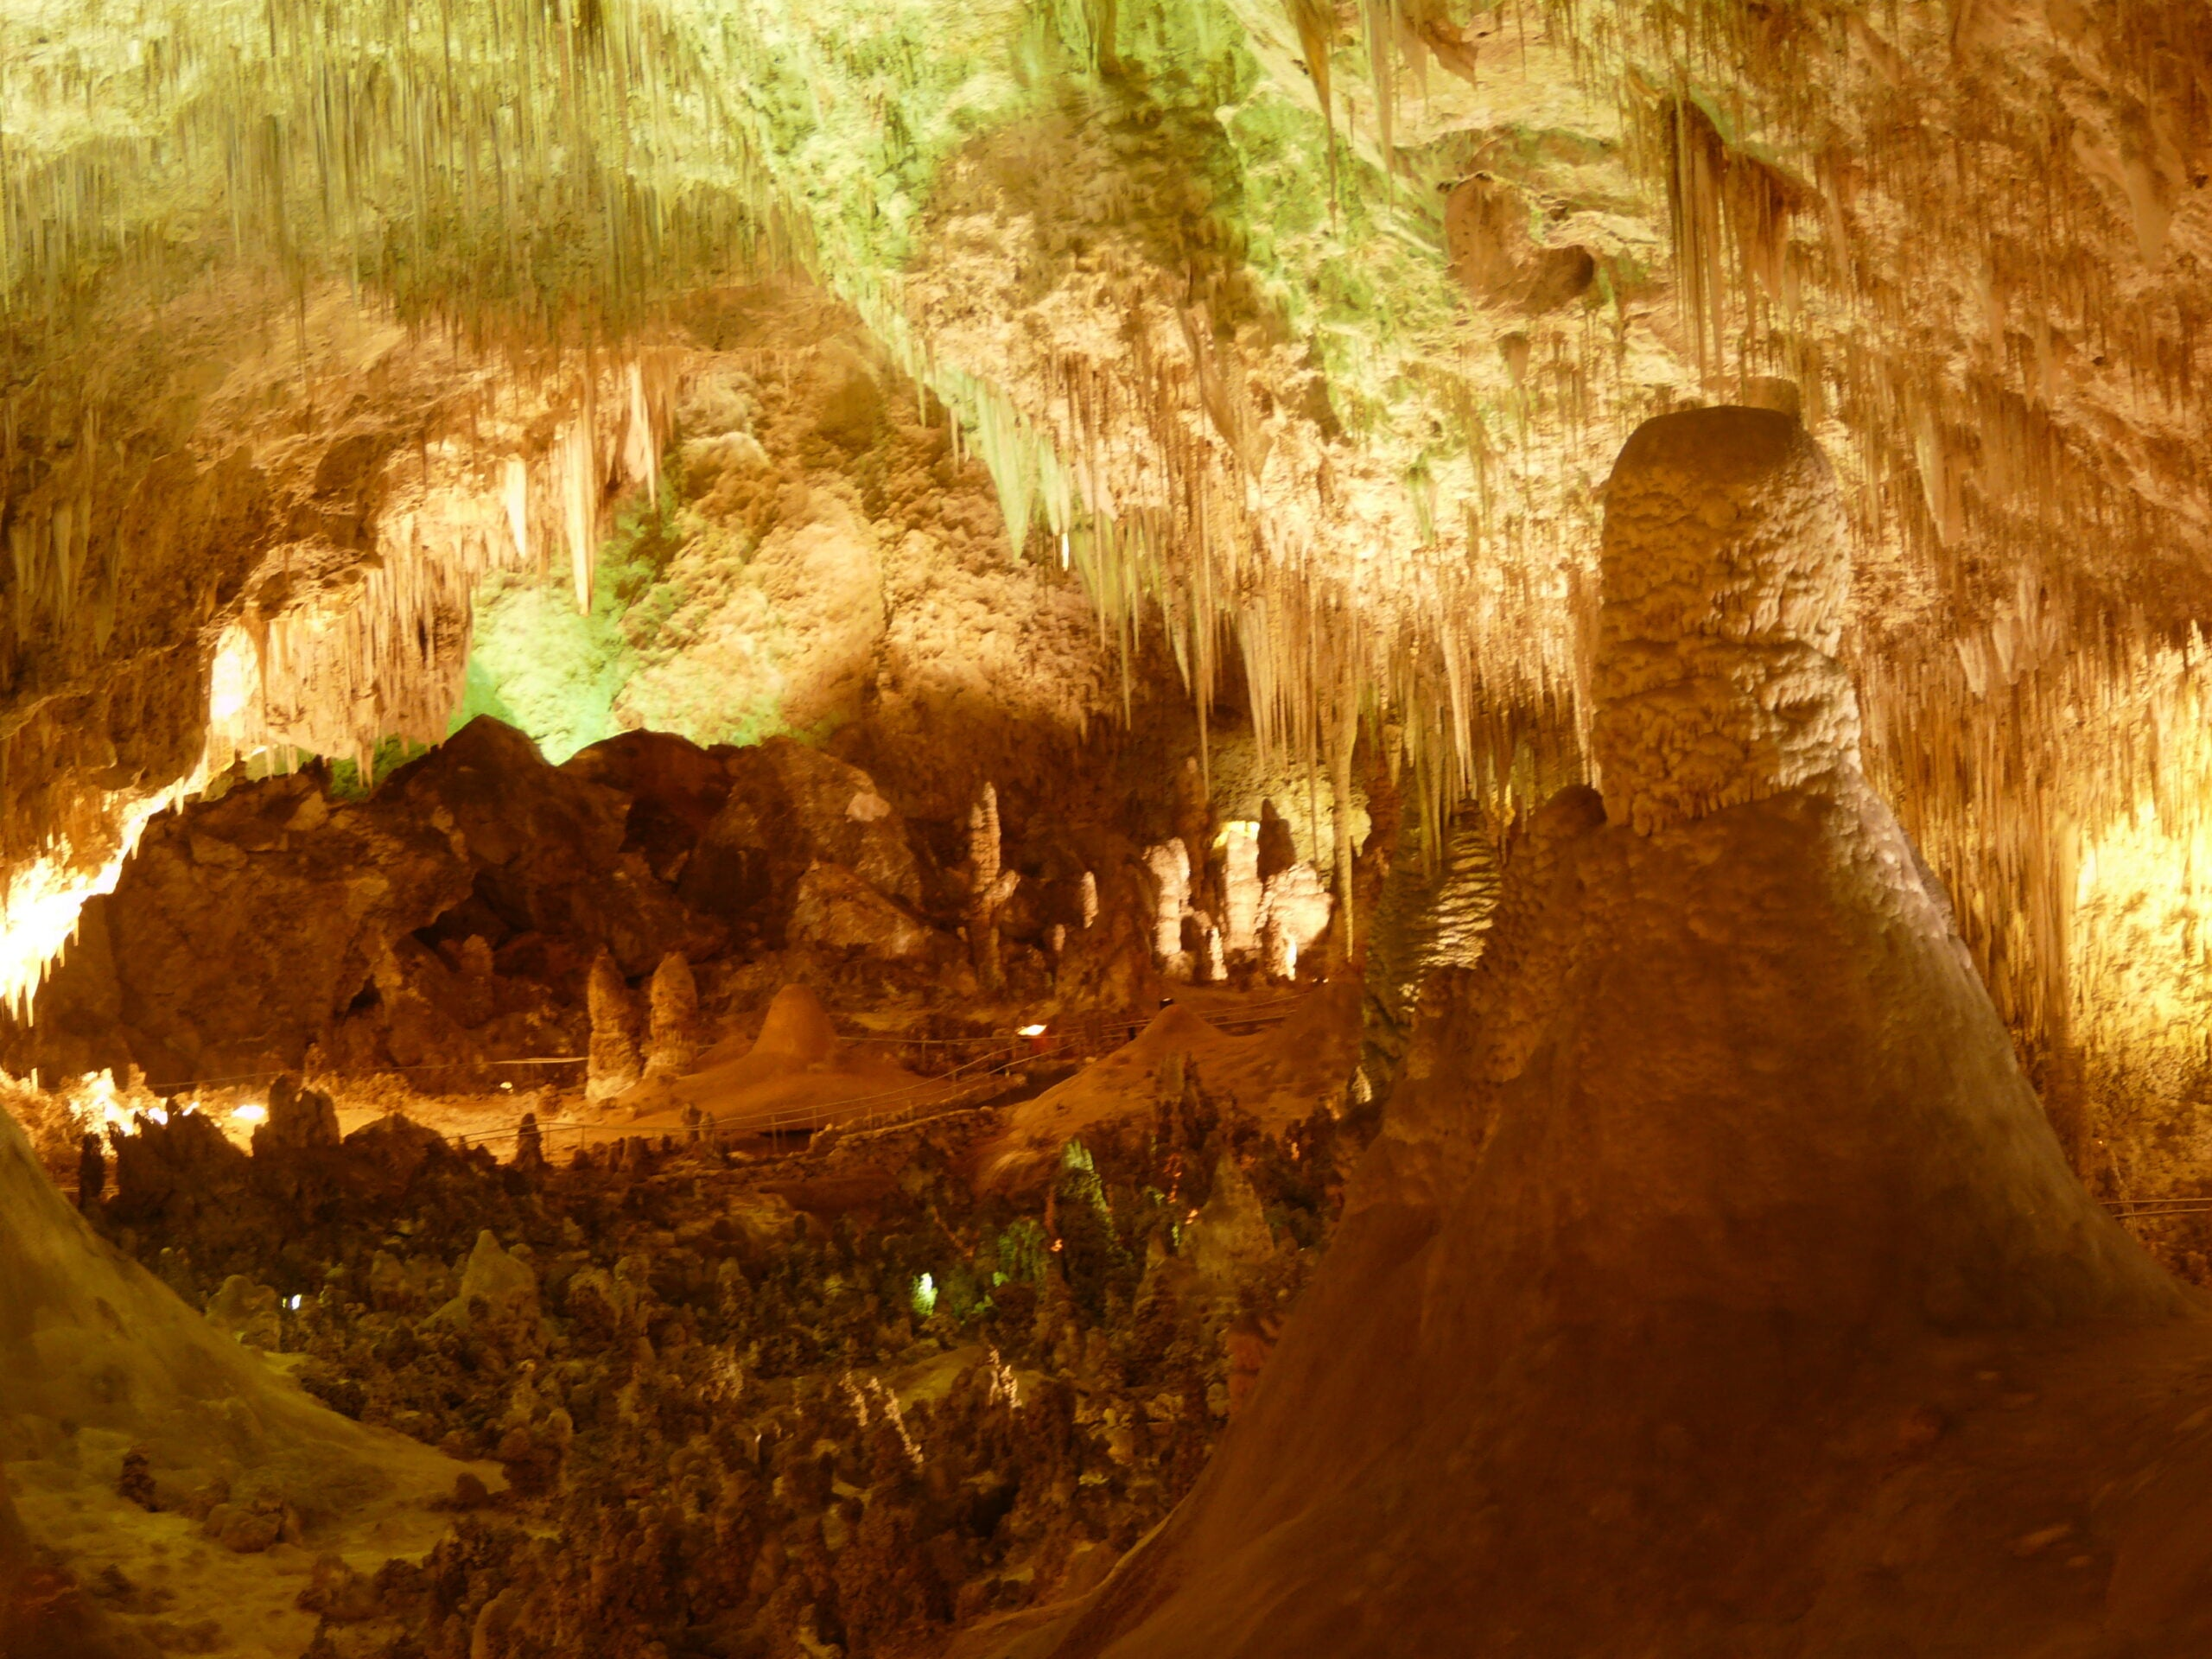 Munching Microbes Cause Caves To Grow